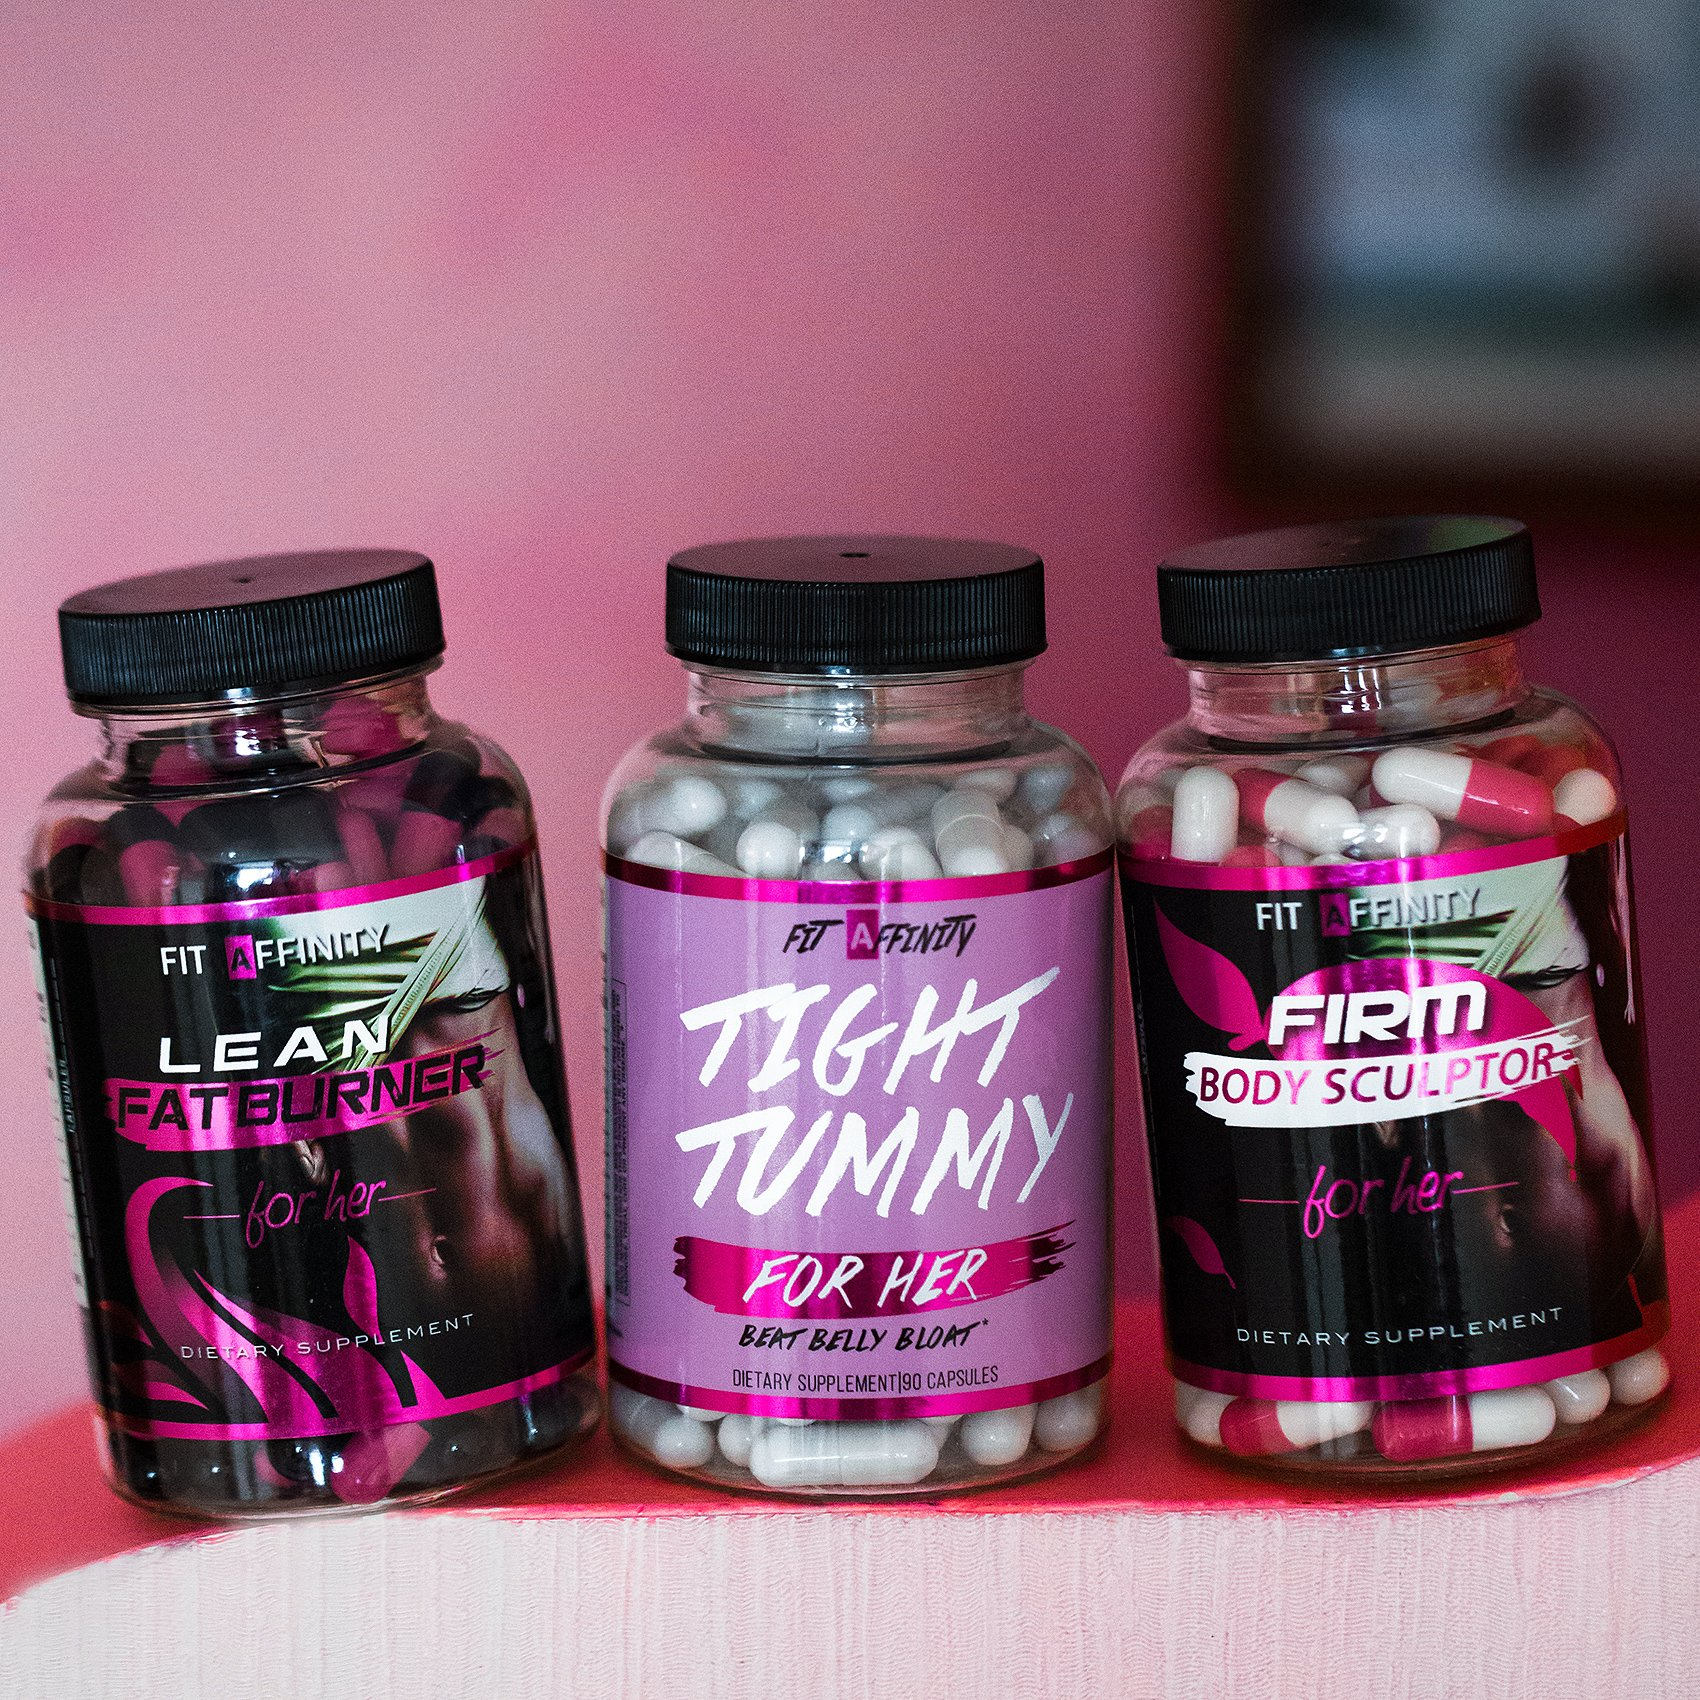 Fit Affinity - Weight Loss Bundle - Lean Fat Burner, Tight Tummy, Firm Body Sculptor by Fit Affinity (Image #5)